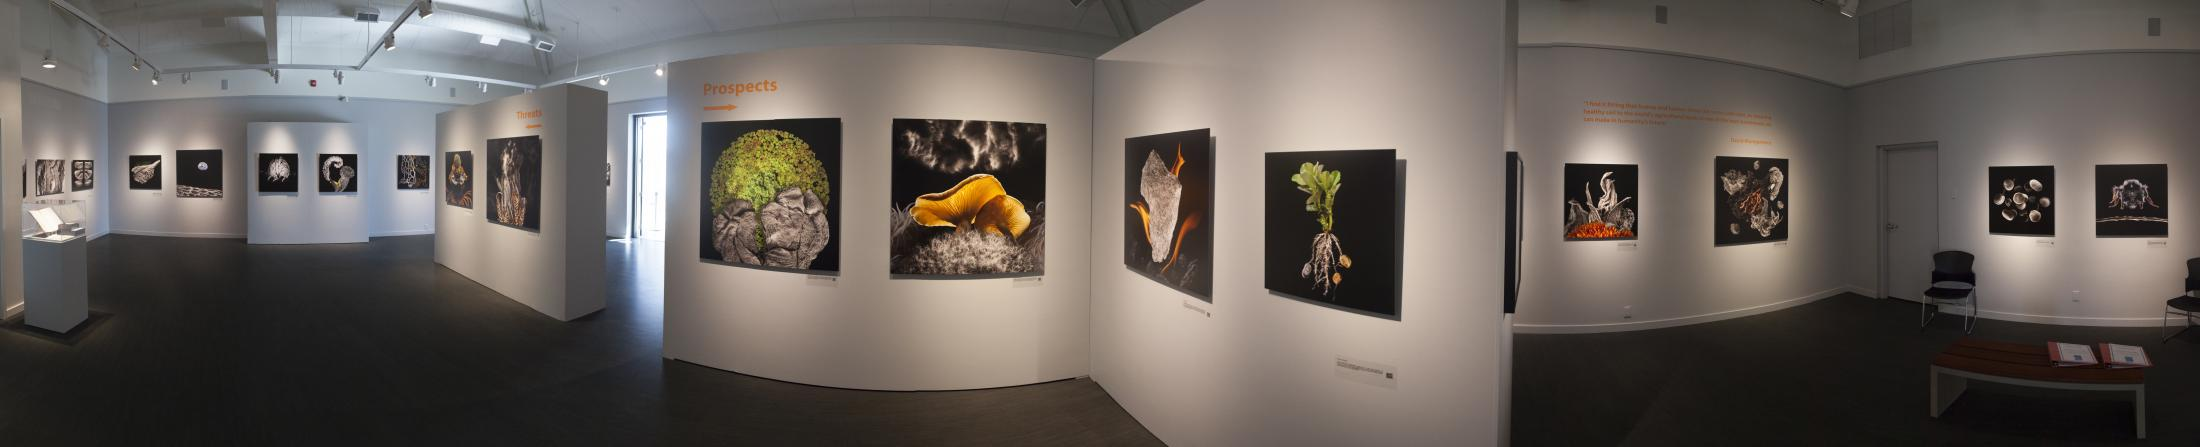 View Food for Thought Exhibition Images